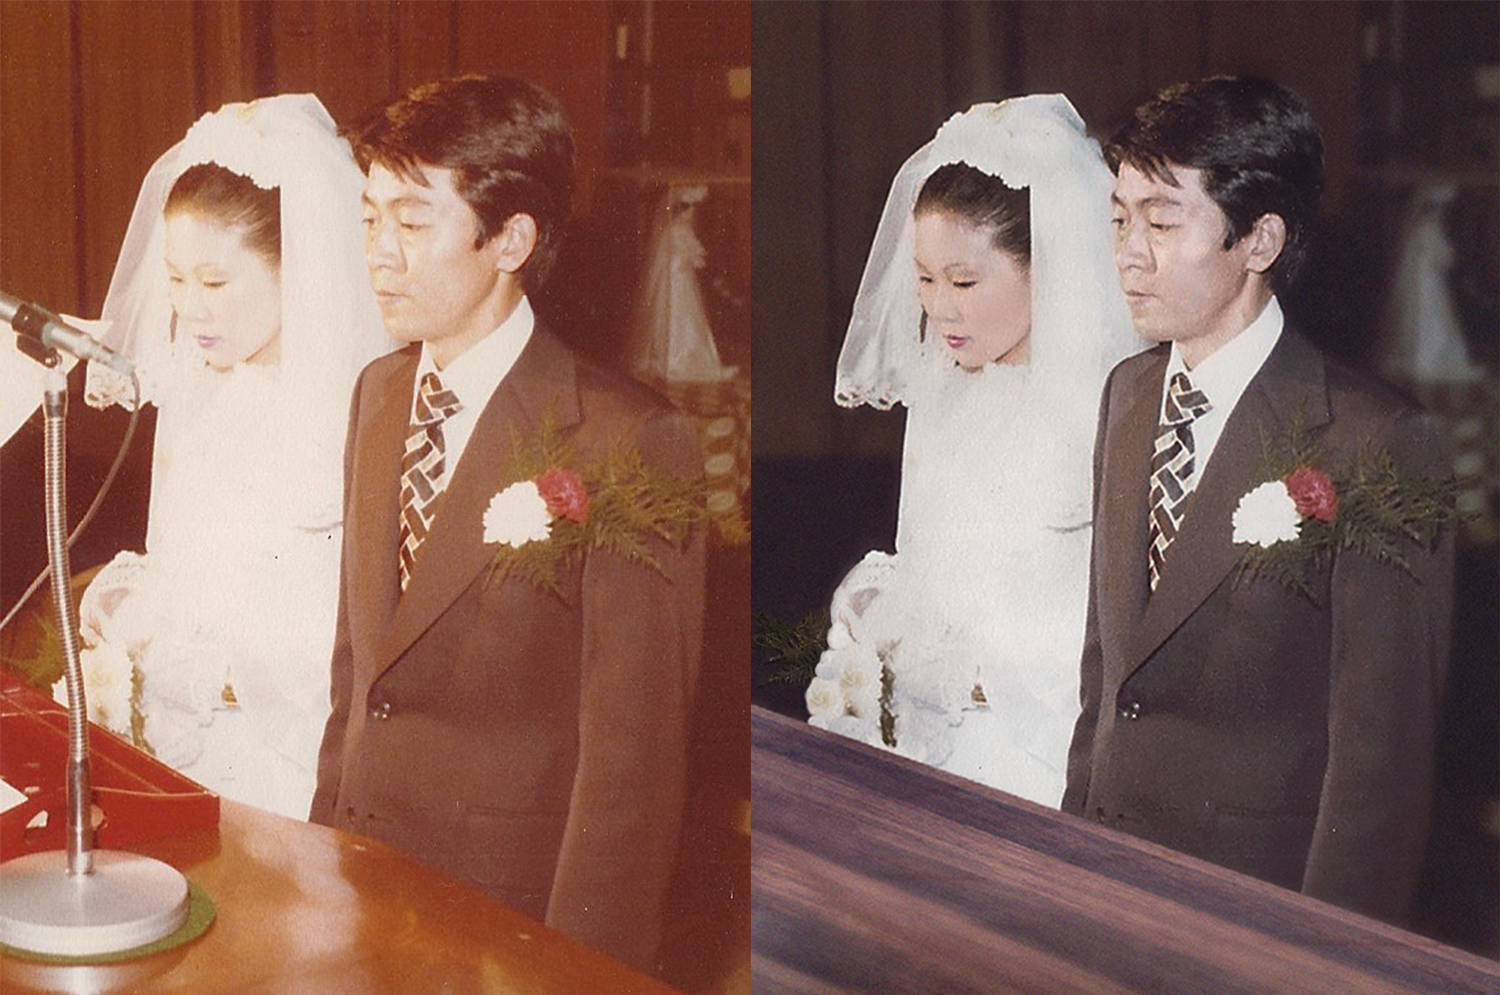 Restored and cleaned up wedding picture.